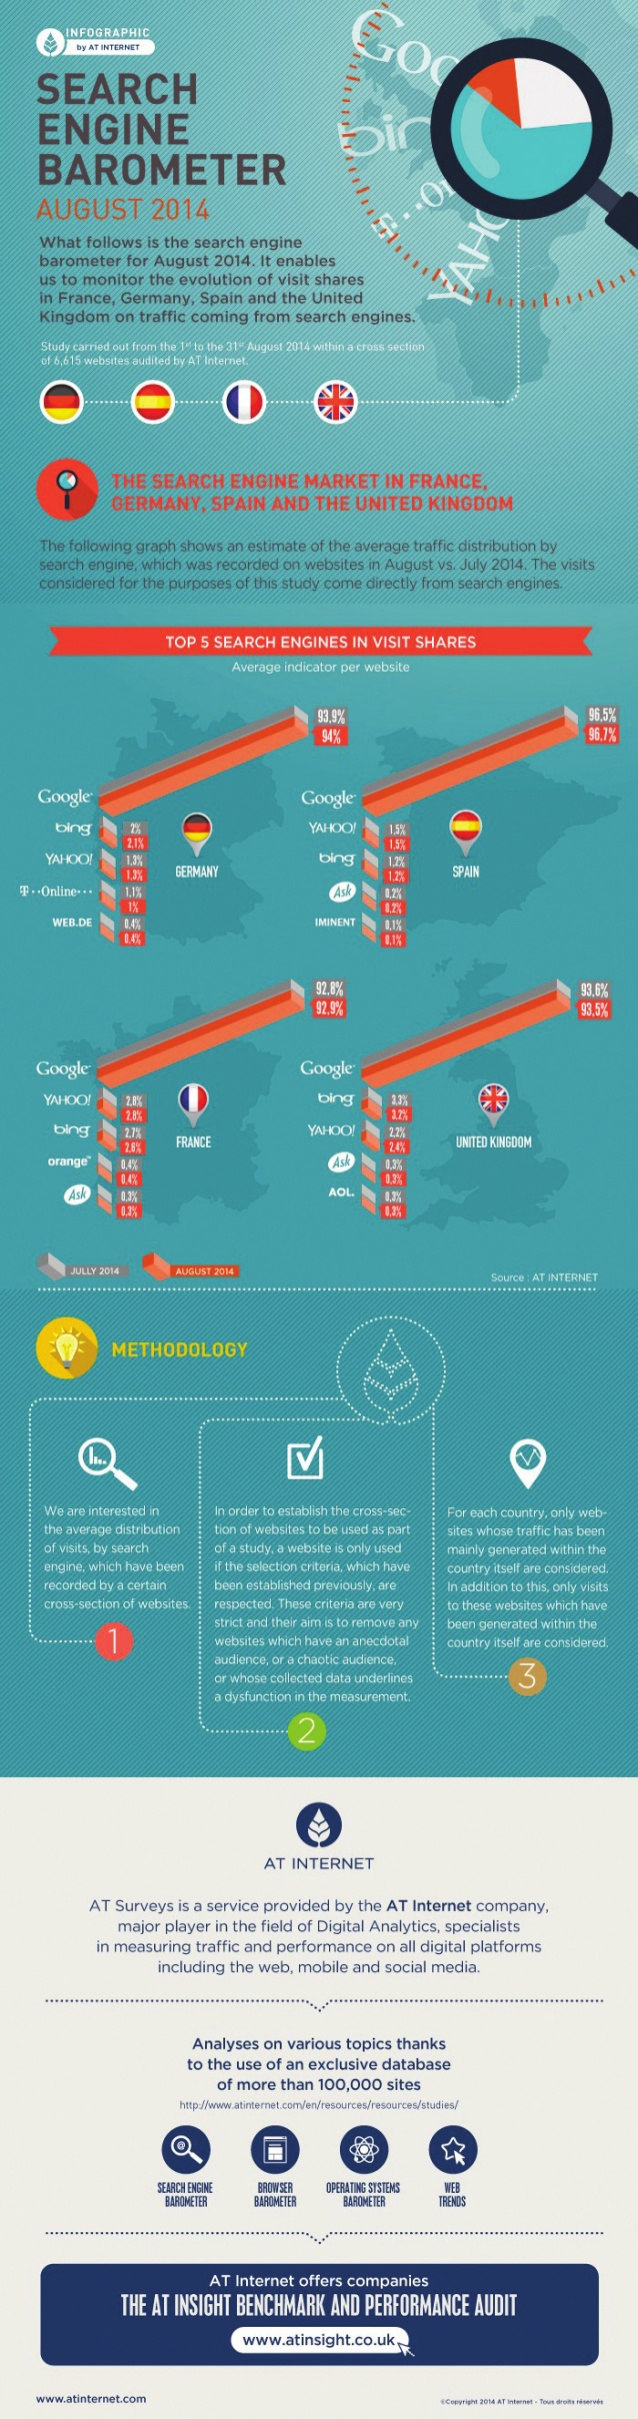 Search engine barometer infographic august 2014